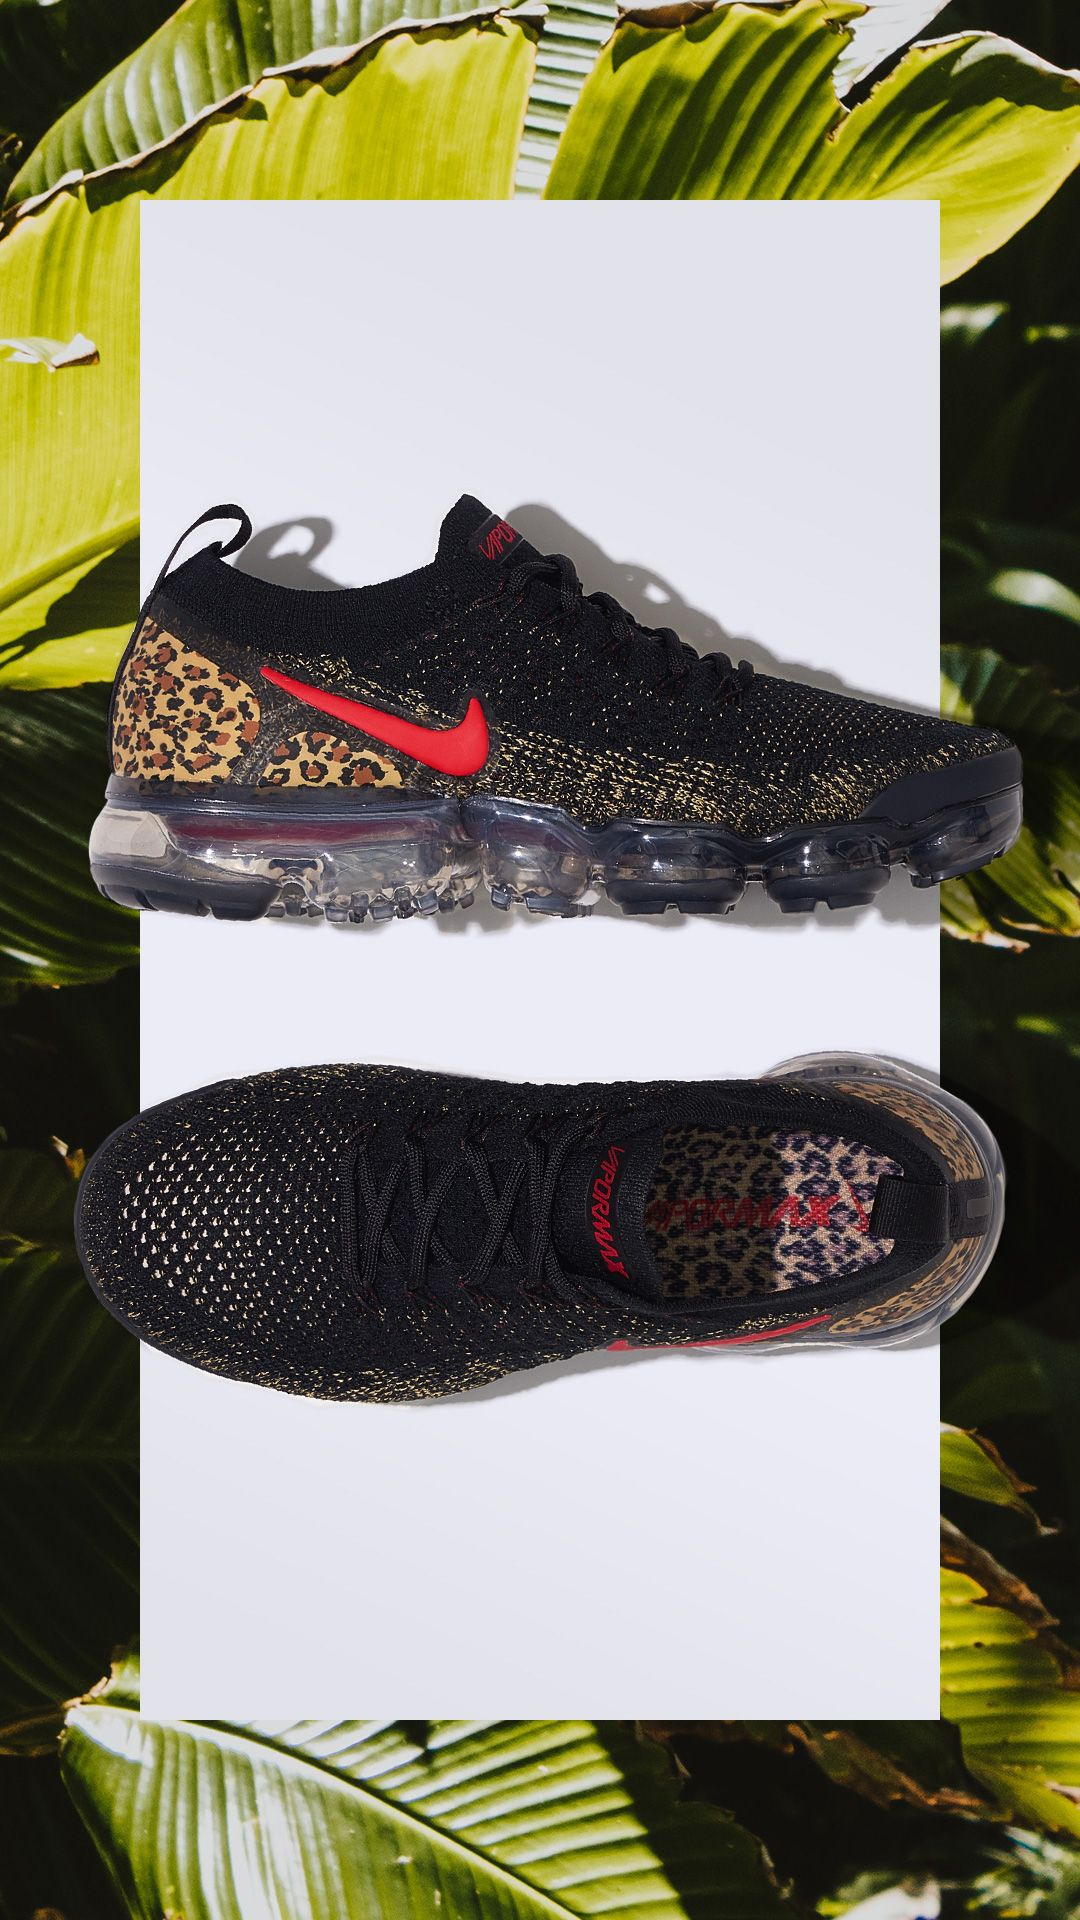 586f612c3c8d3 Featuring a Nike Air VaporMax with animal print on the heel.